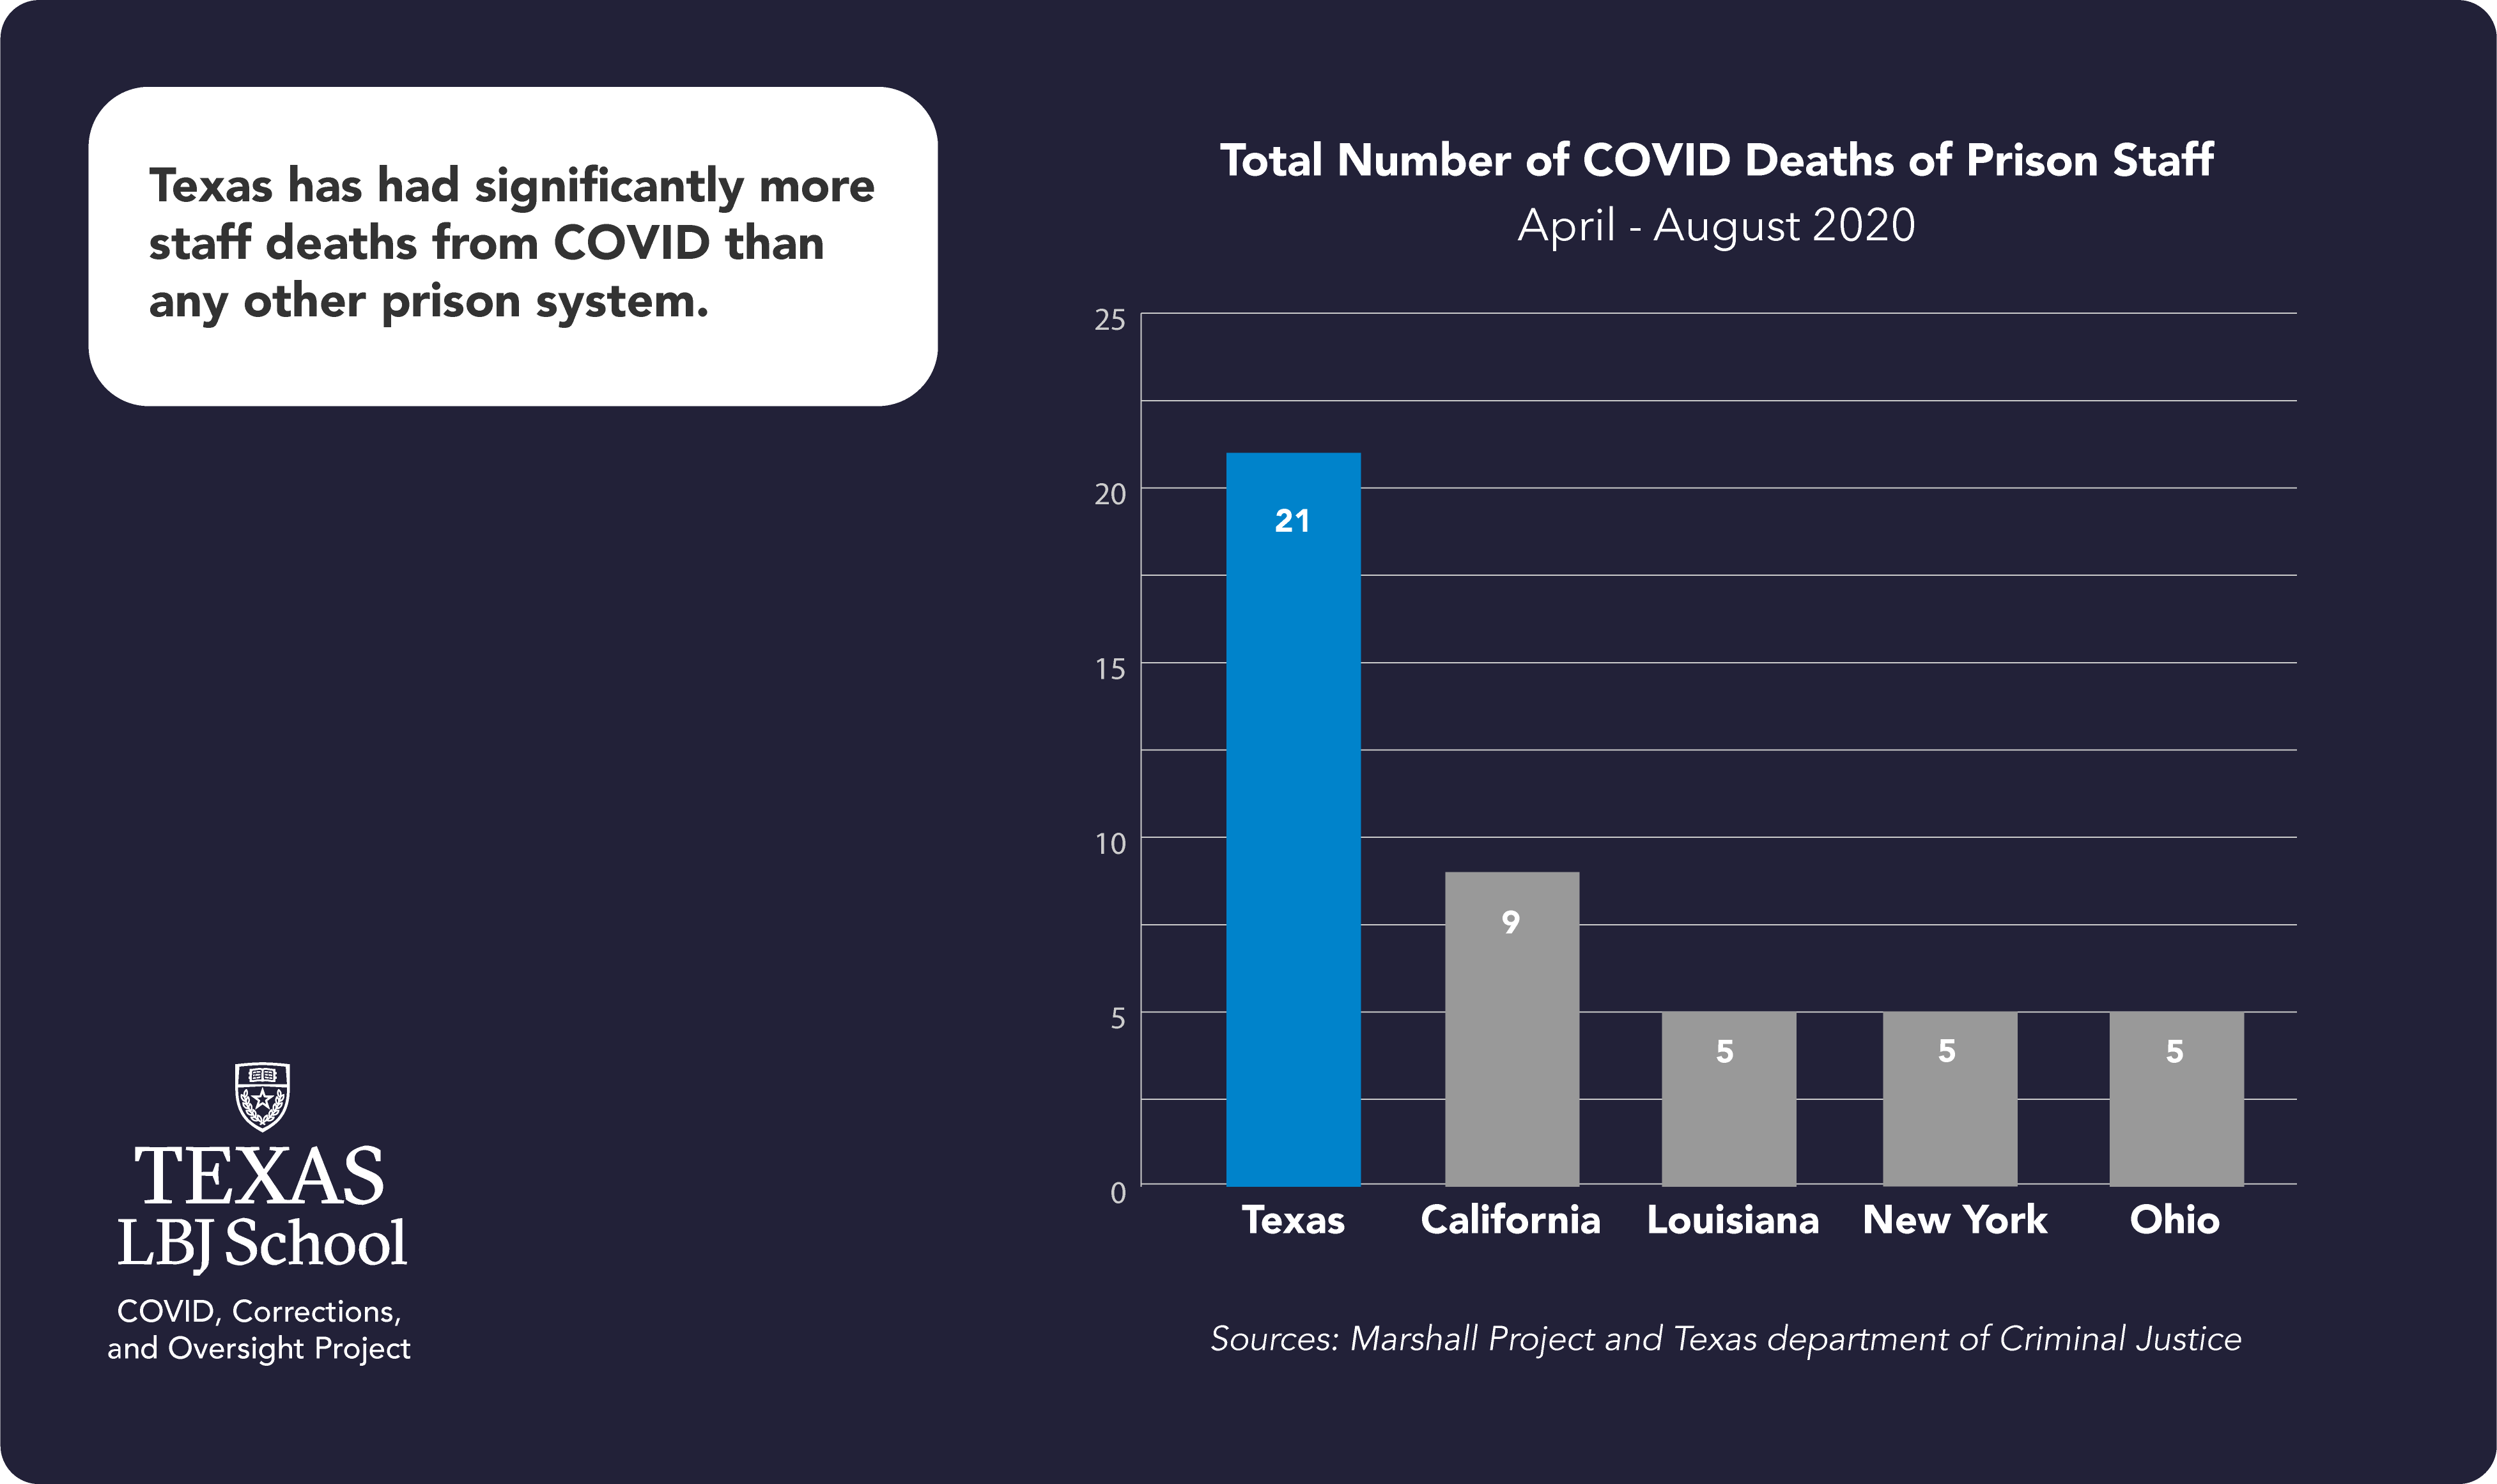 Deitch report: Total number of COVID deaths of prison staff